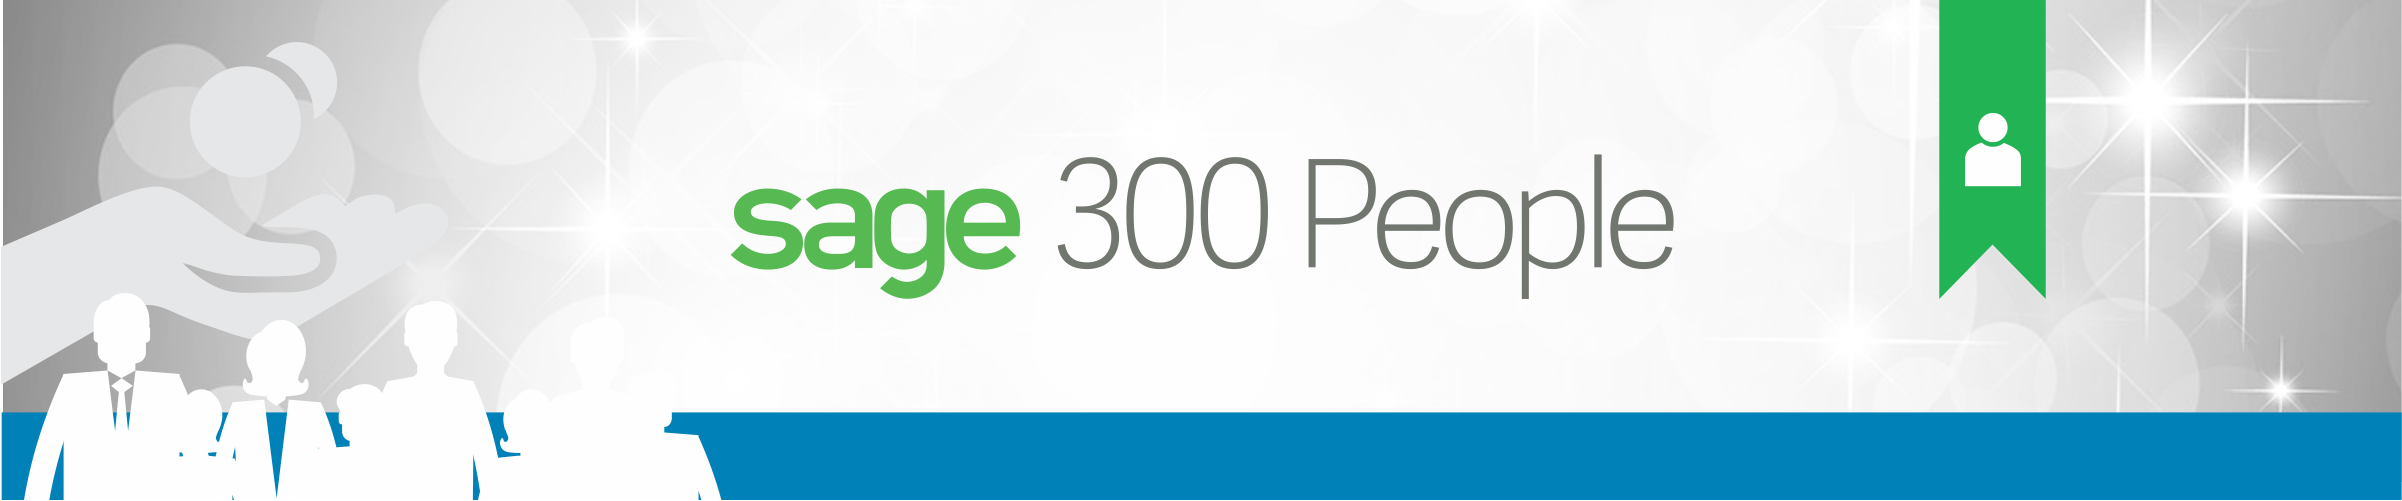 Sage 300 People - AccTech Systems